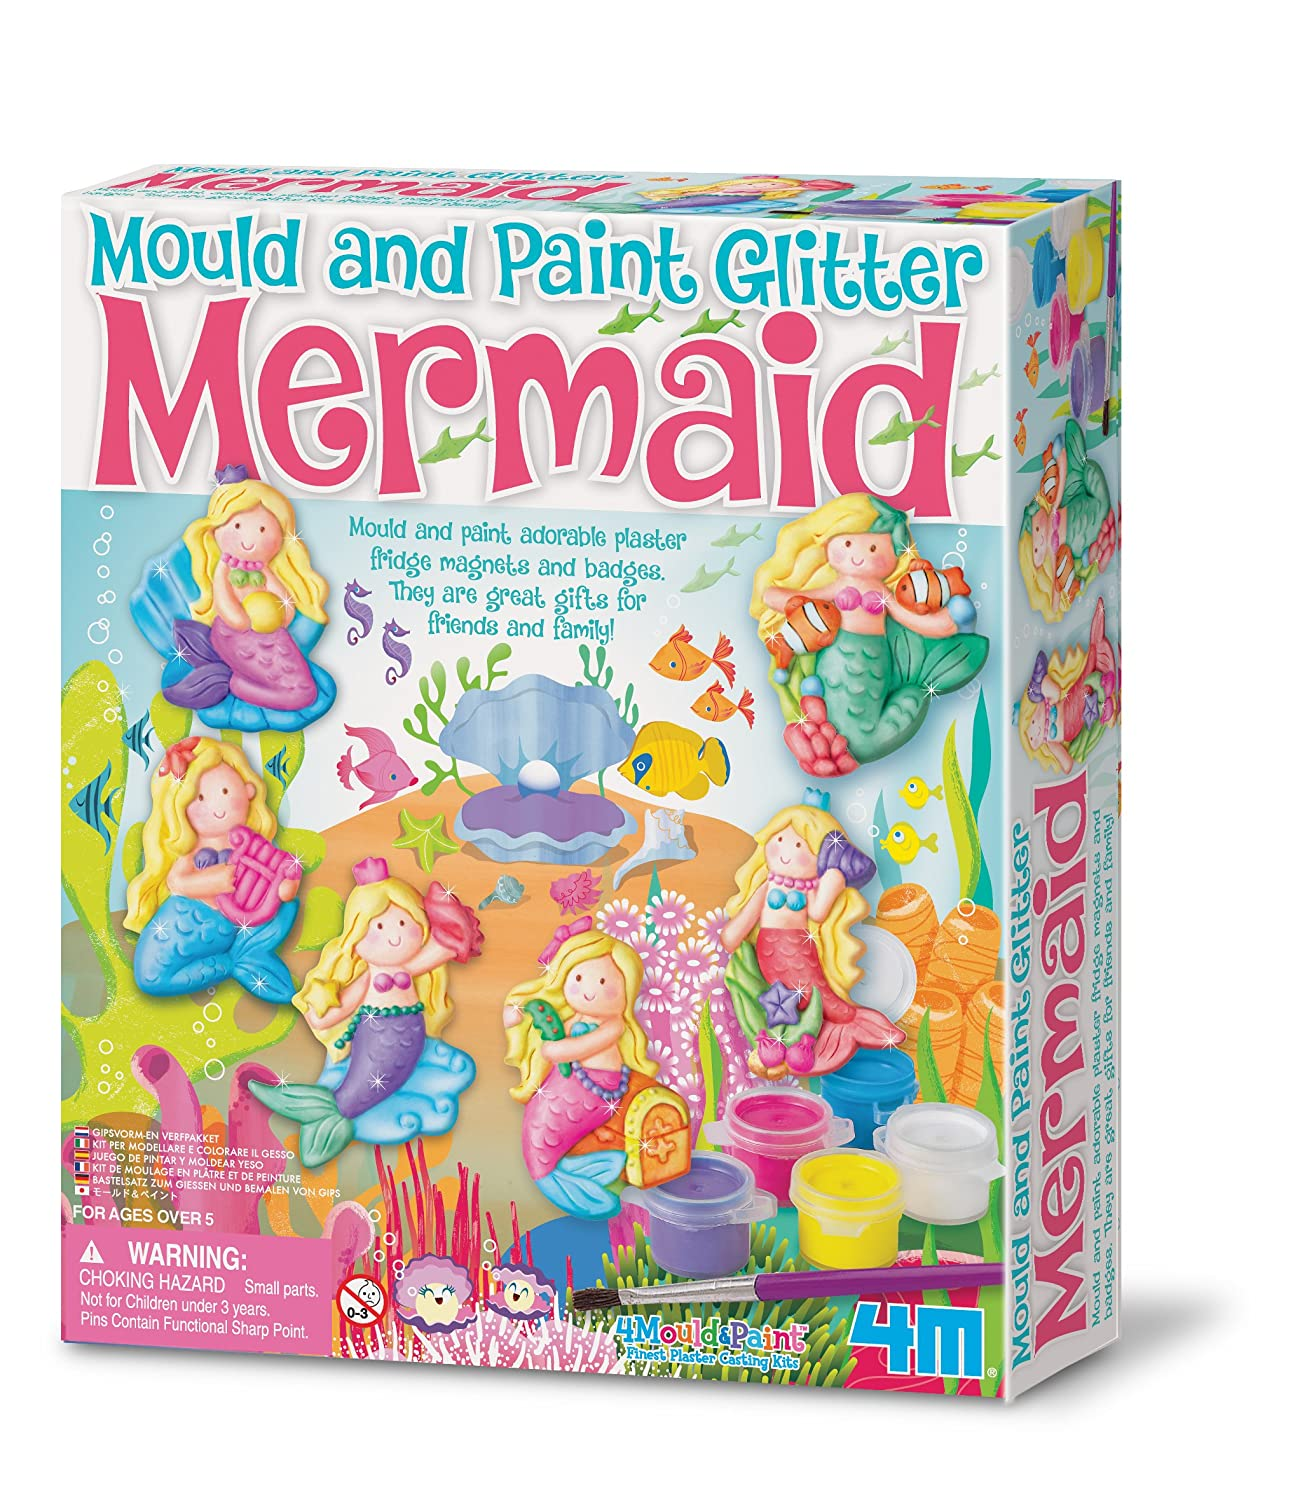 4M Glitter Mermaid Mould and Paint Great Gizmos 2016 Arts_and_Crafts Craft Kits